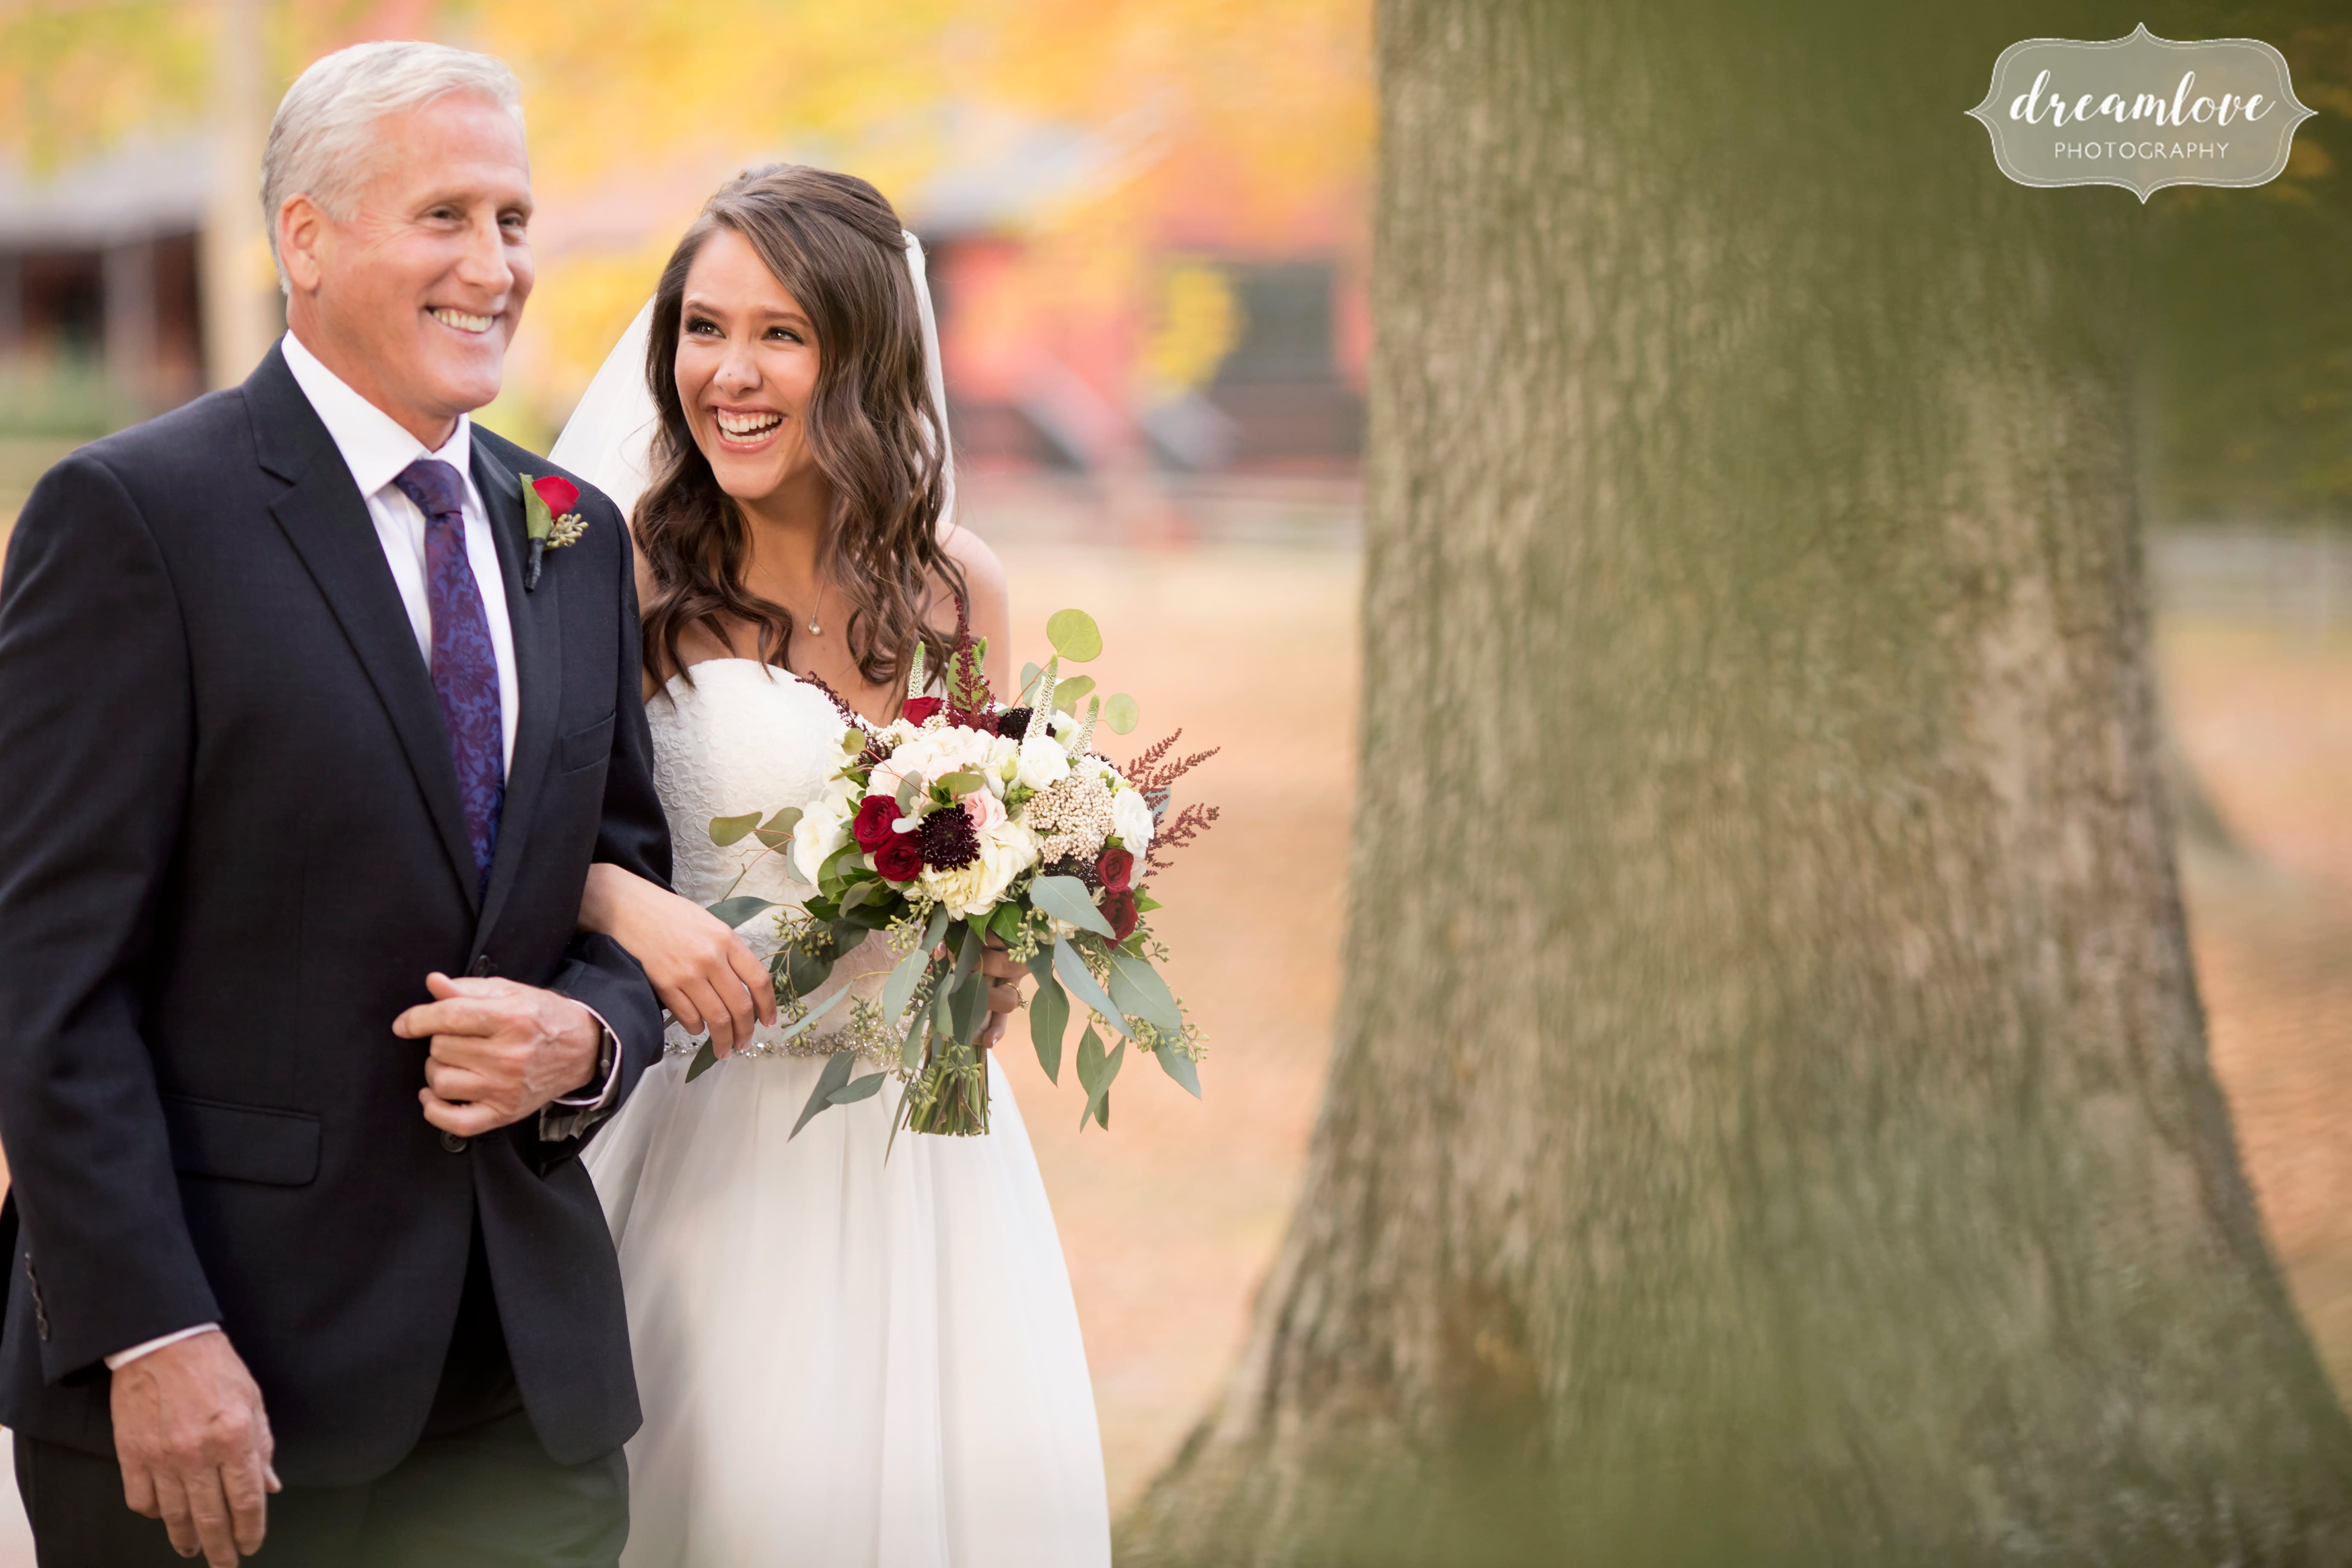 Documentary wedding photo of the bride and her dad before walking down the aisle at this outdoor woodsy wedding in Crystal Lake Pavilion.